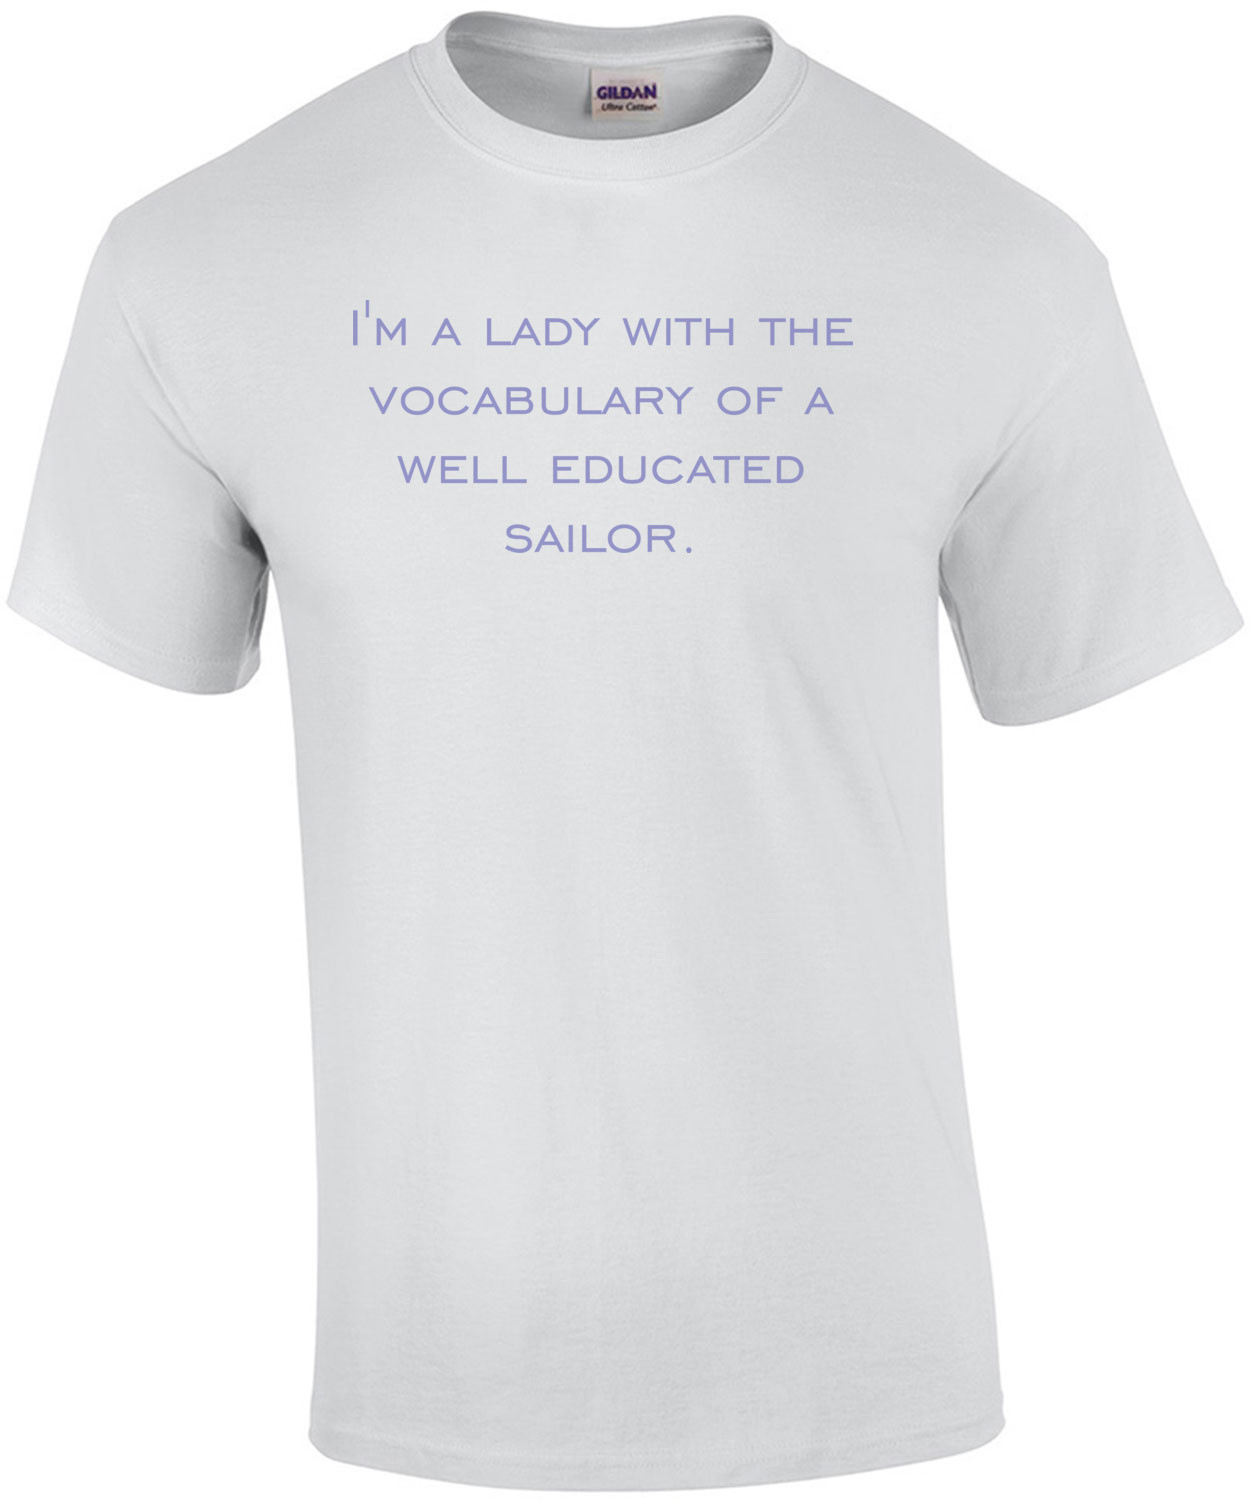 I'm a lady with the vocabulary of a well educated sailor.